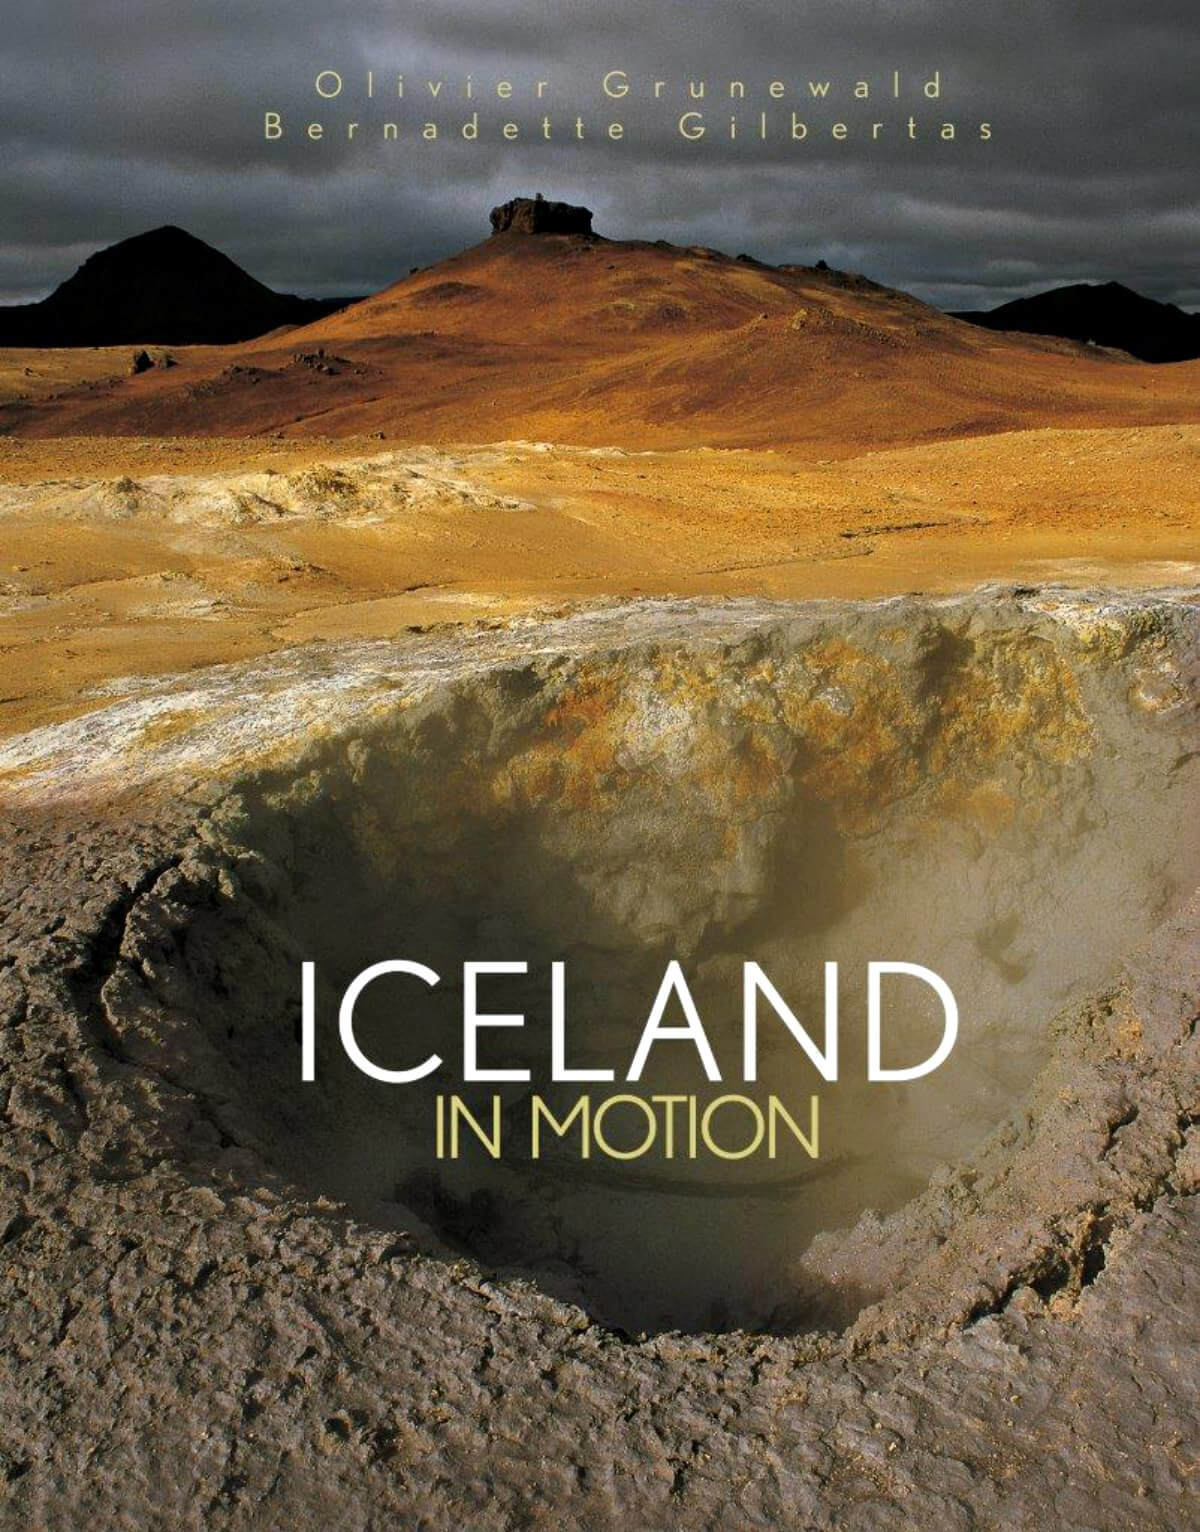 Iceland in Motion